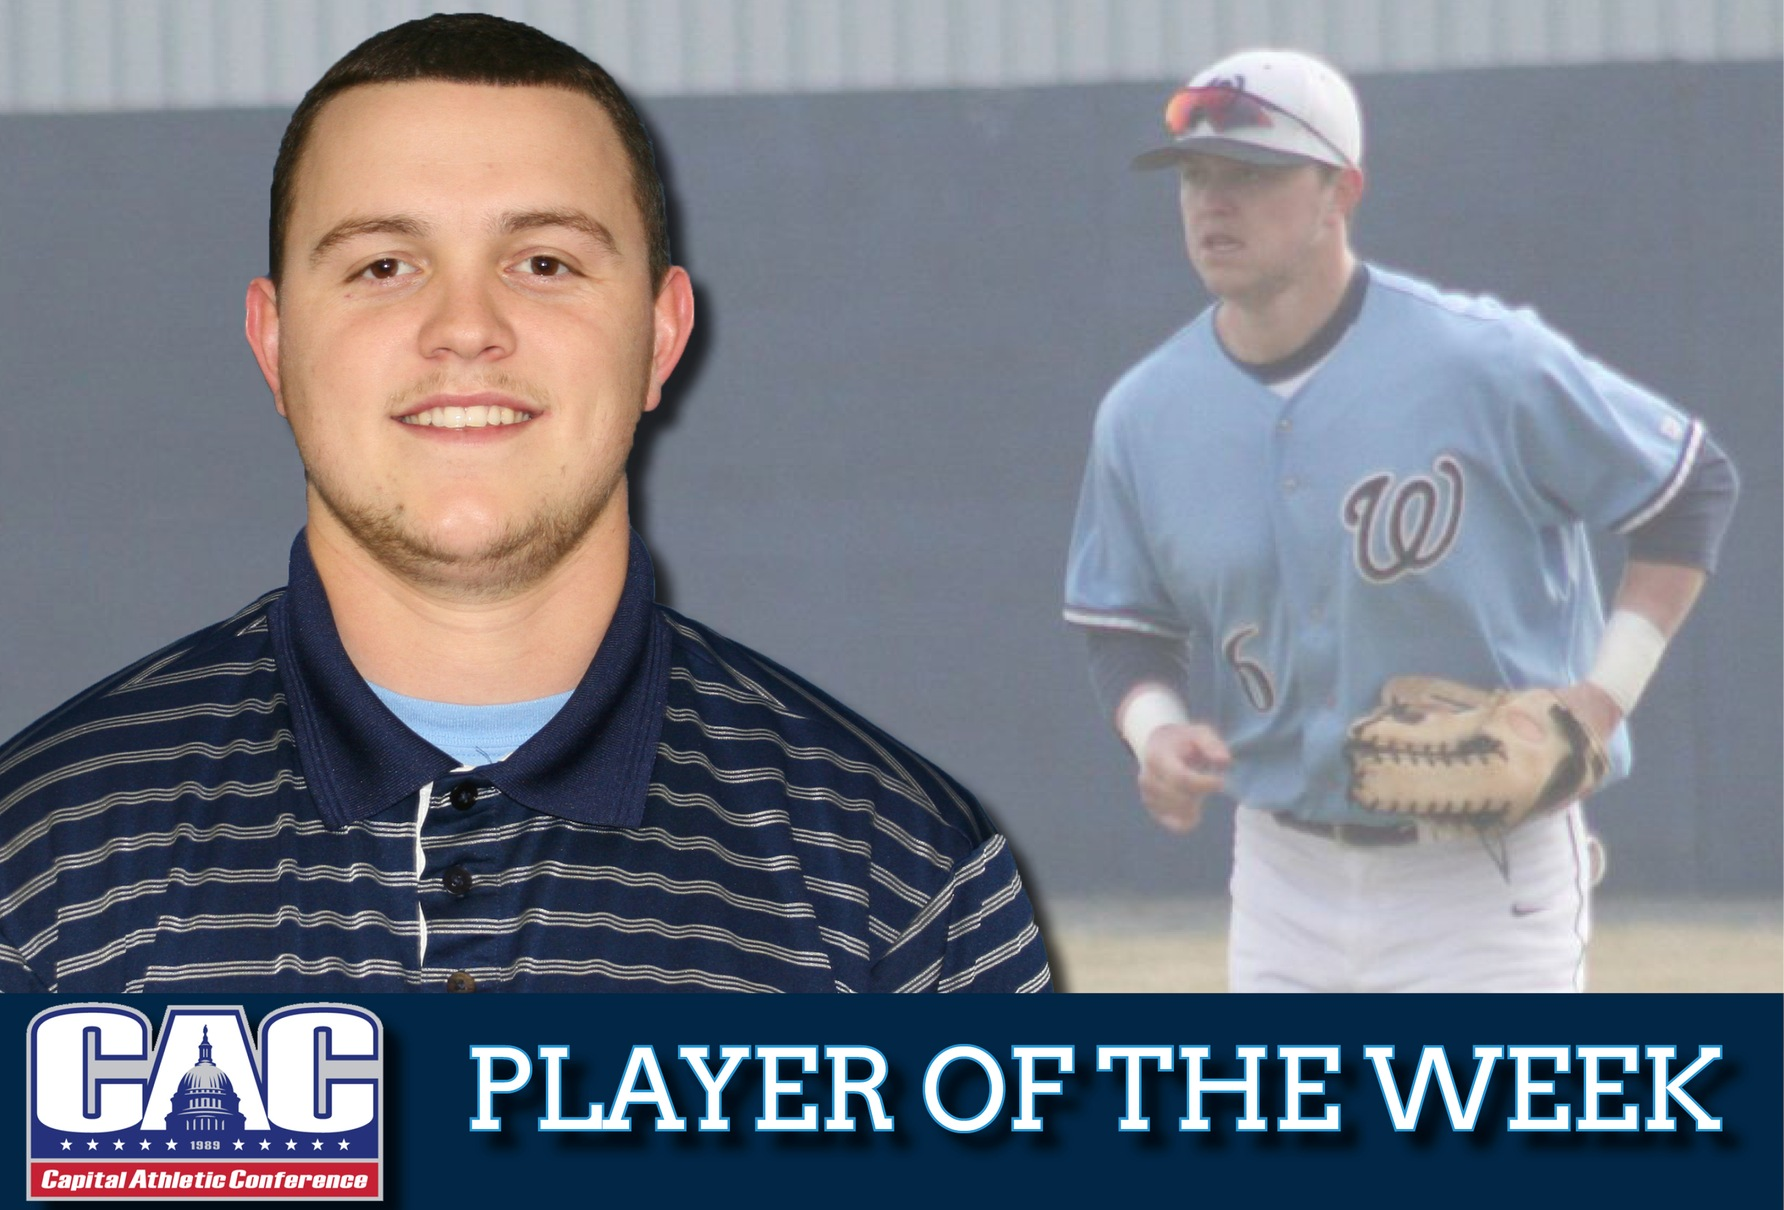 Mears named CAC Baseball Player of the Week